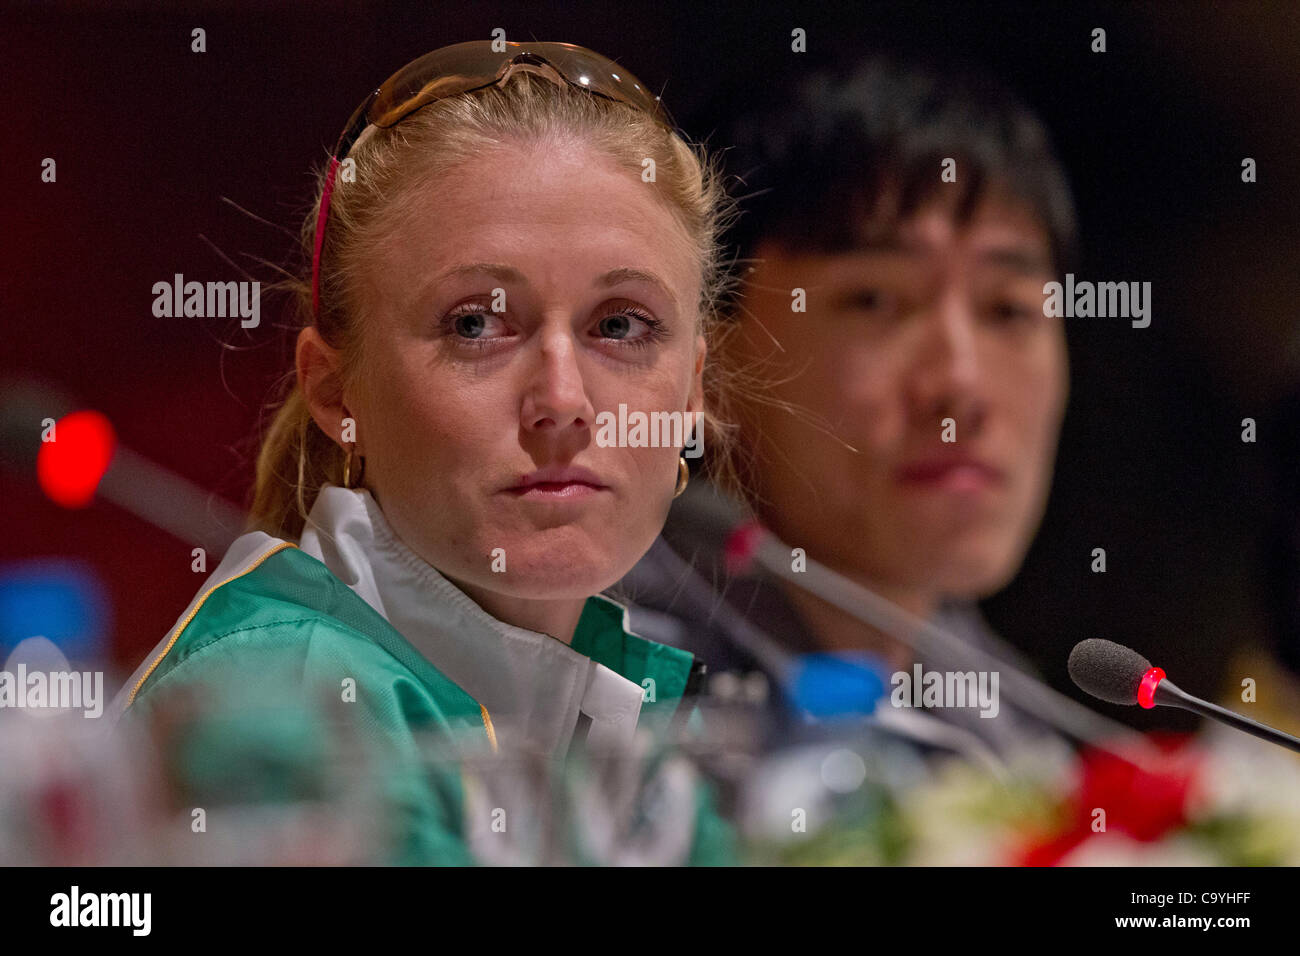 ISTANBUL, TURKEY: Thursday 8 March 2012, Sally Pearson of Australia (AUS), reigning world outdoor 100m hurdles champion - Stock Image